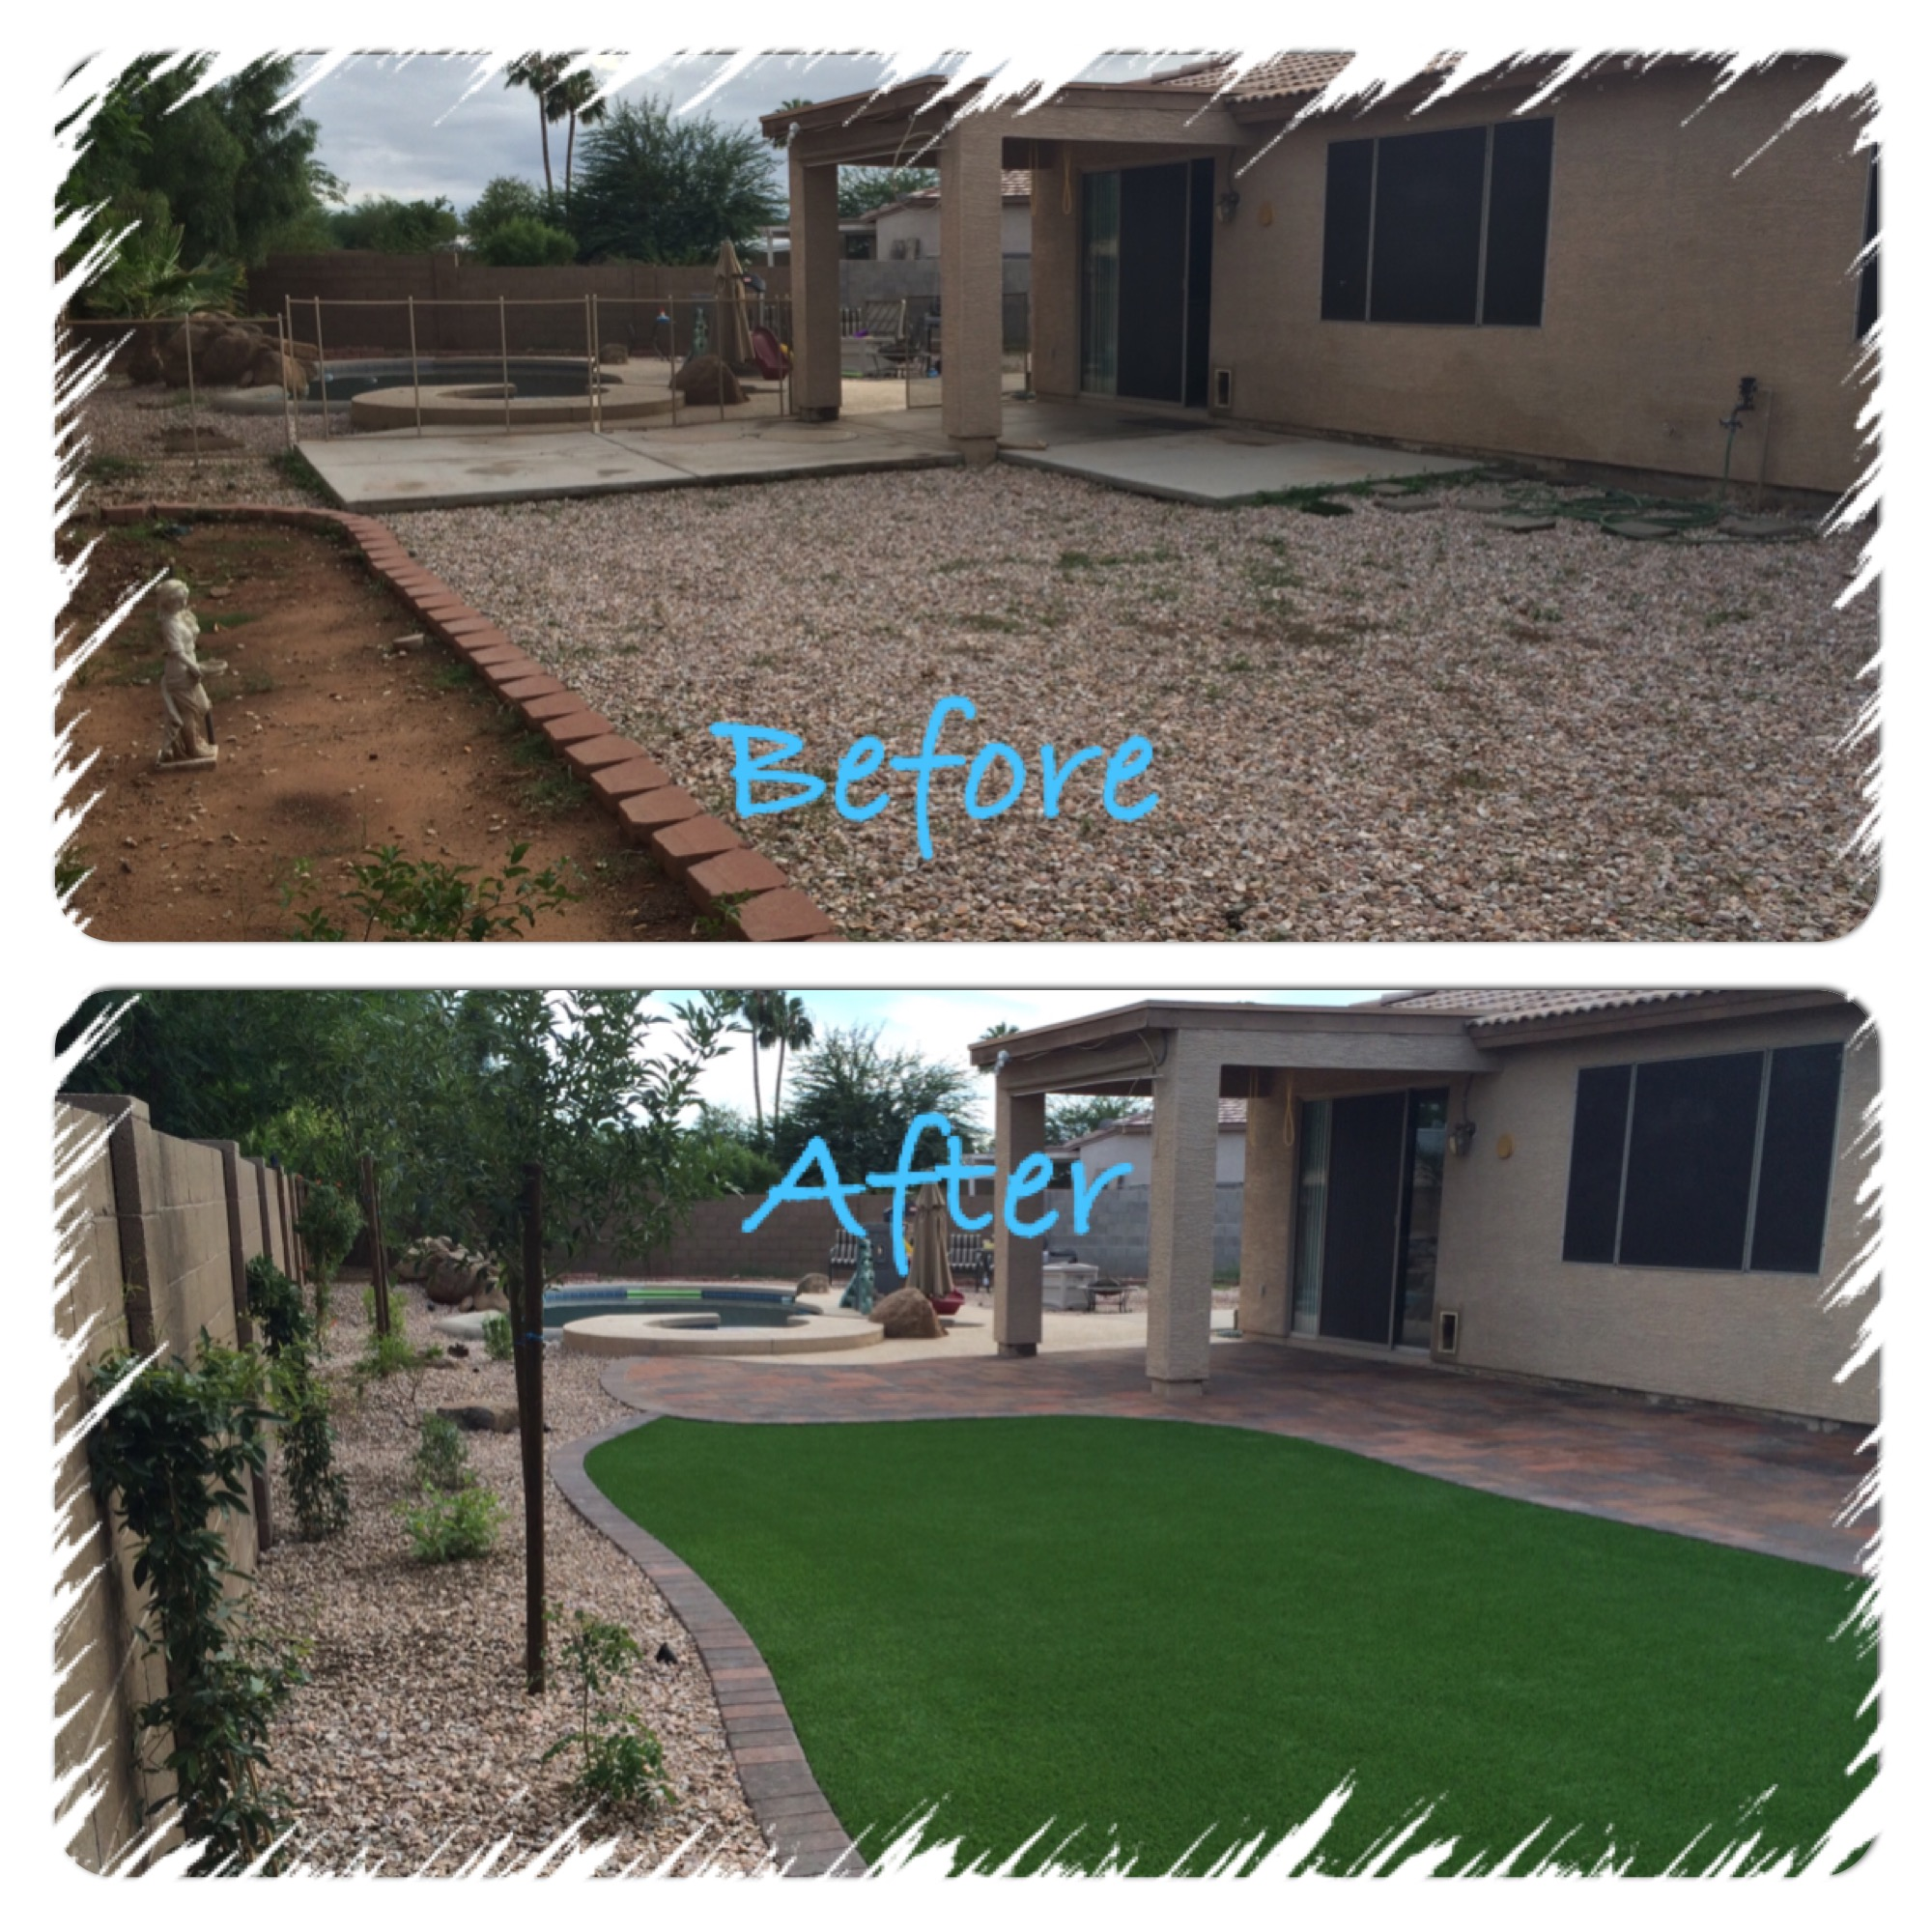 Patio designs archives arizona living landscape design Backyard design pictures